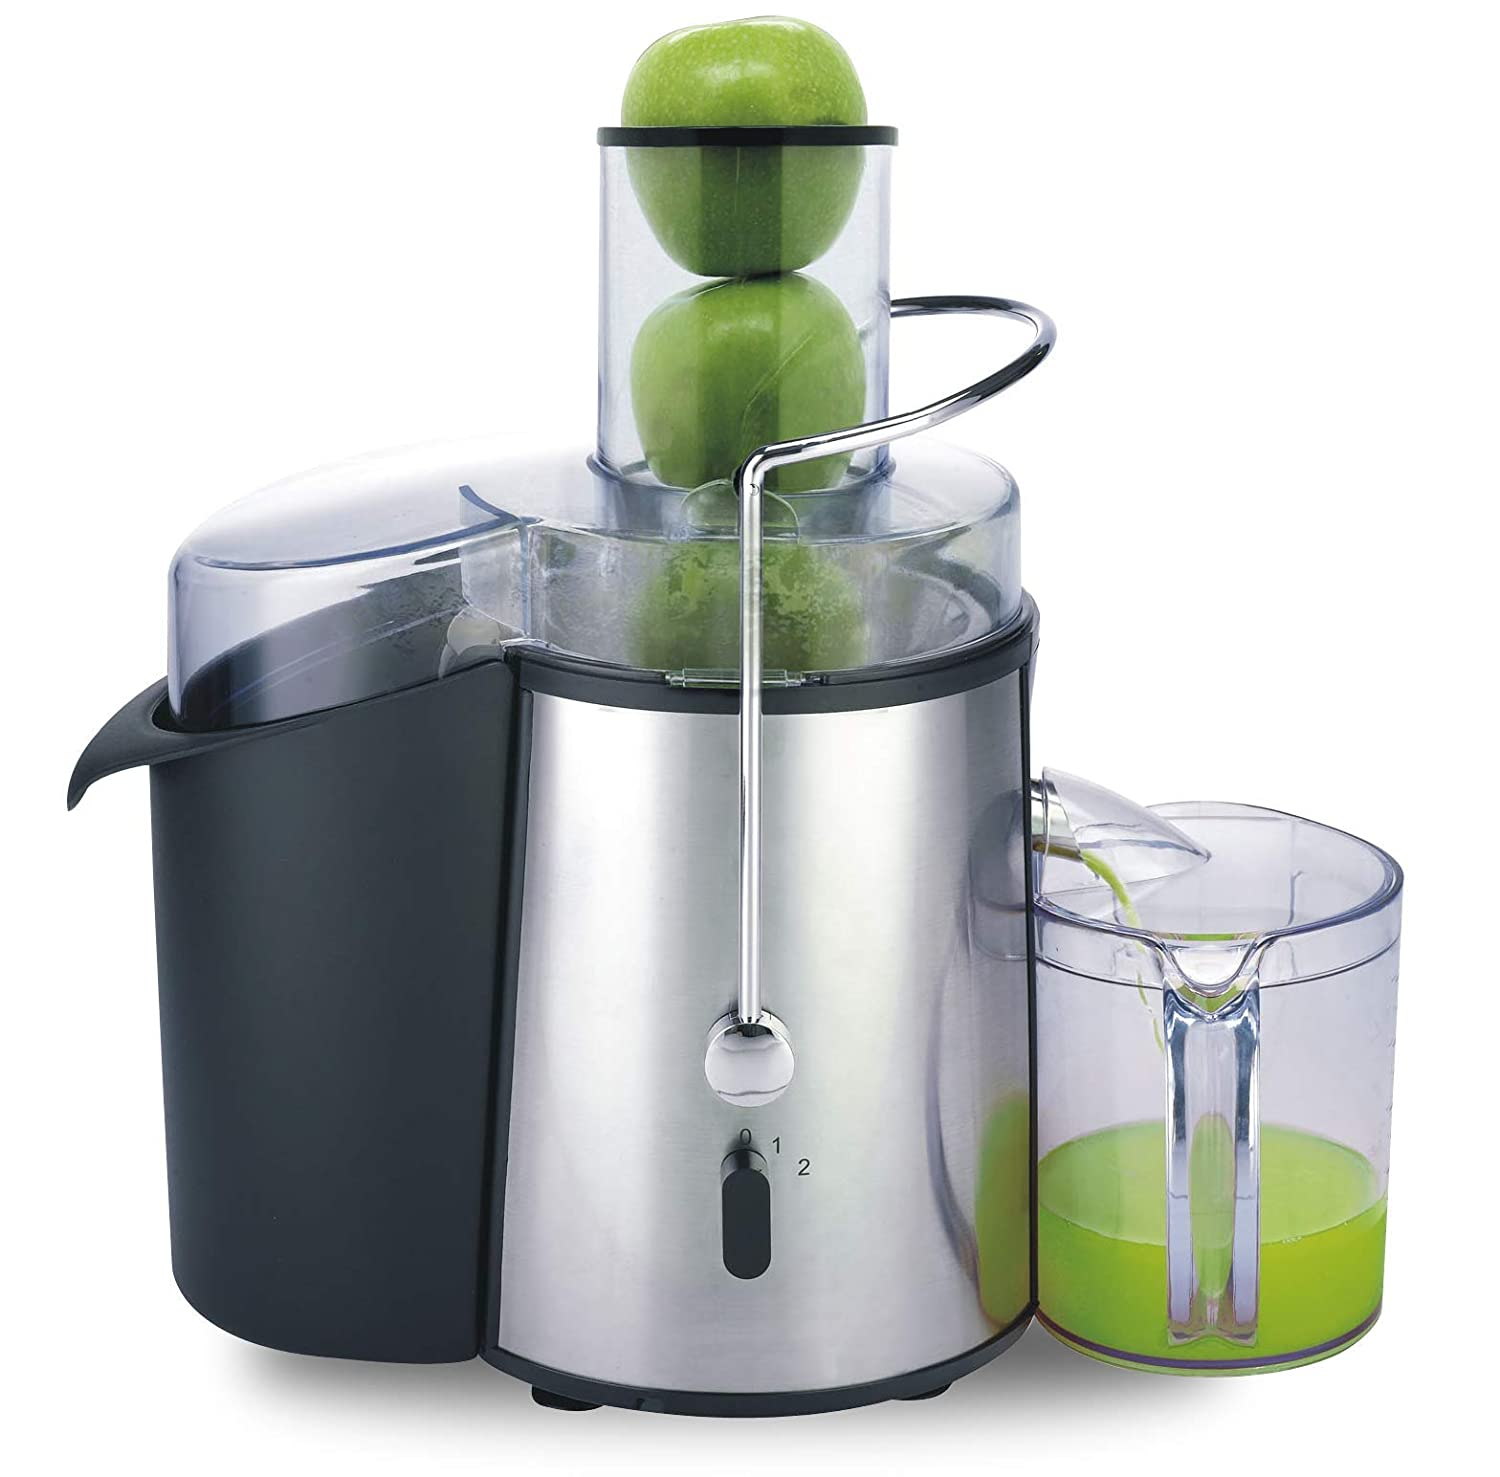 Juicer Machine, Slow Masticating Extractor Juicer For Fruits And  Vegetables, Cold Press Juice Maker & Brush ...